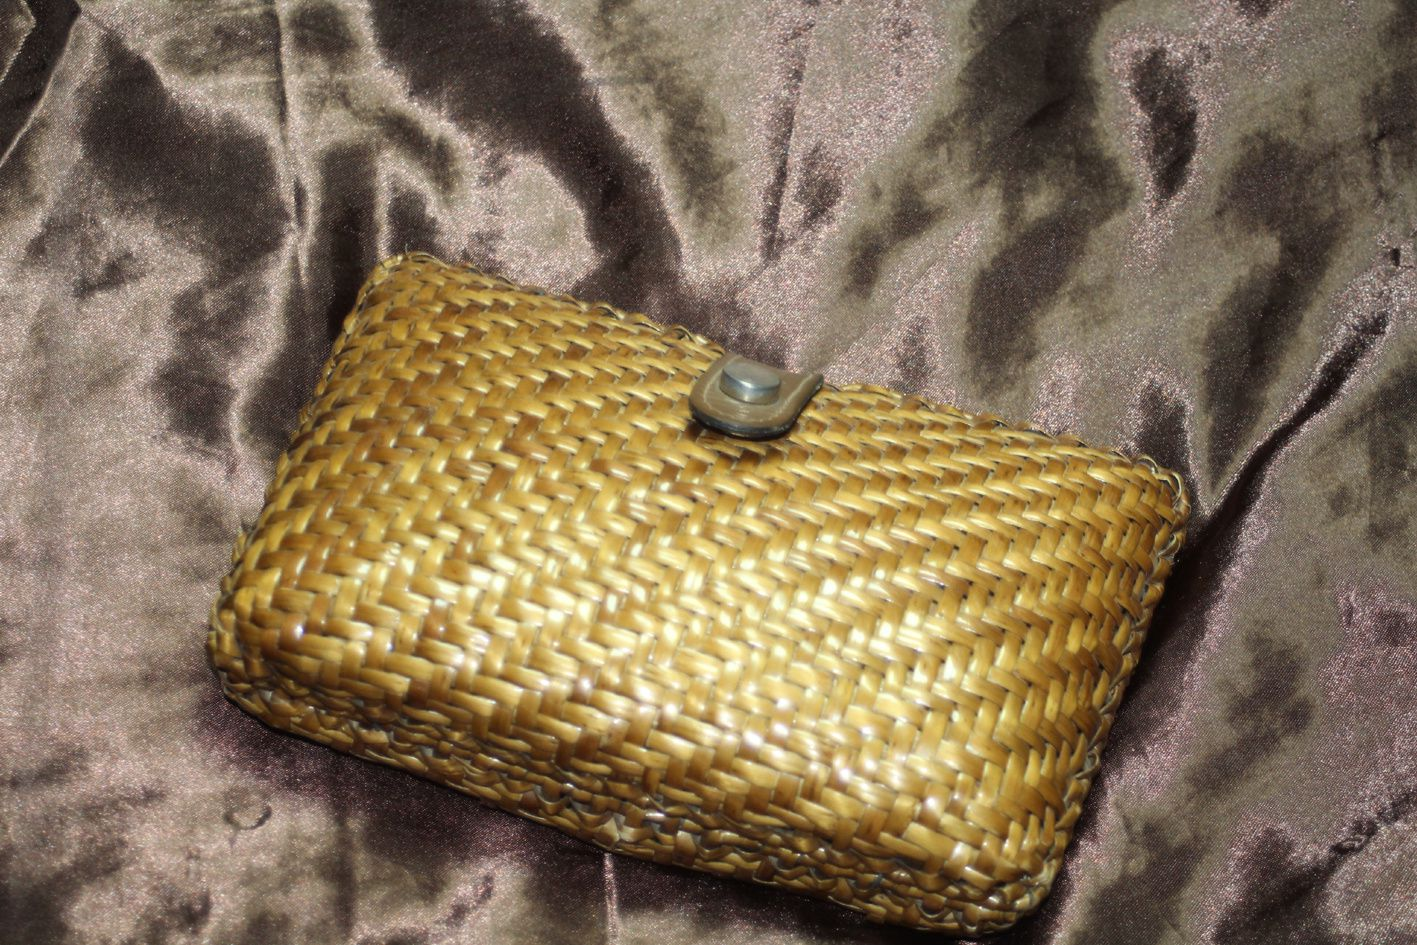 La pochette en rotin, rien a redire sur son état! / The rattan pouch, nothing to say about  its state!